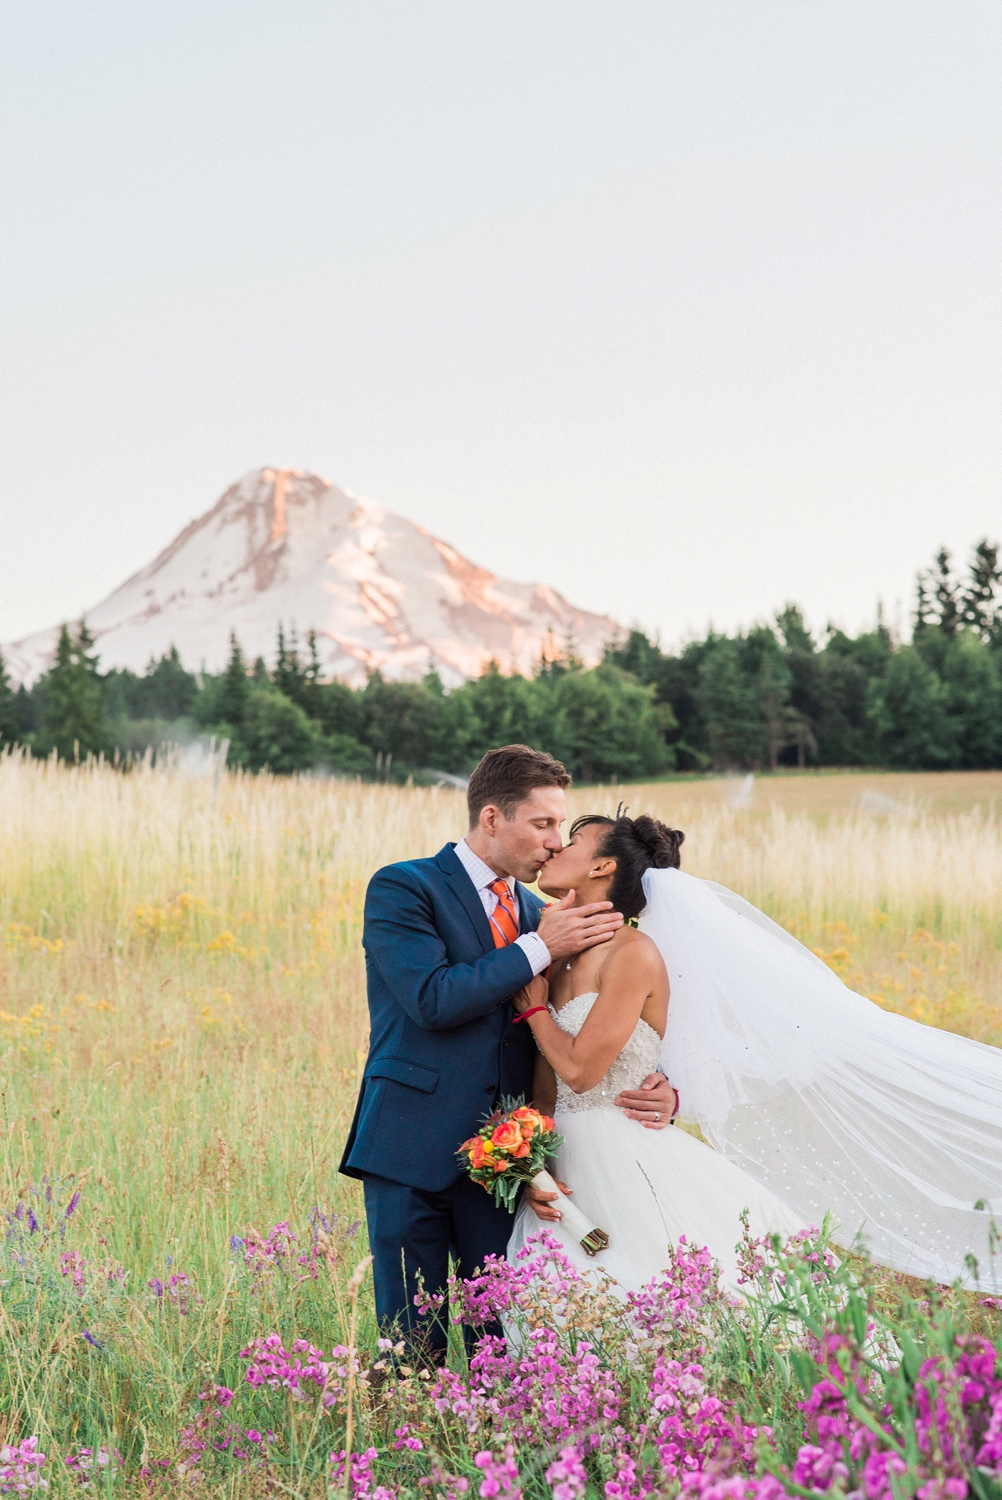 mount-hood-bnb-wedding-portland-oregon-sokhorn-jay-1292_cr.jpg